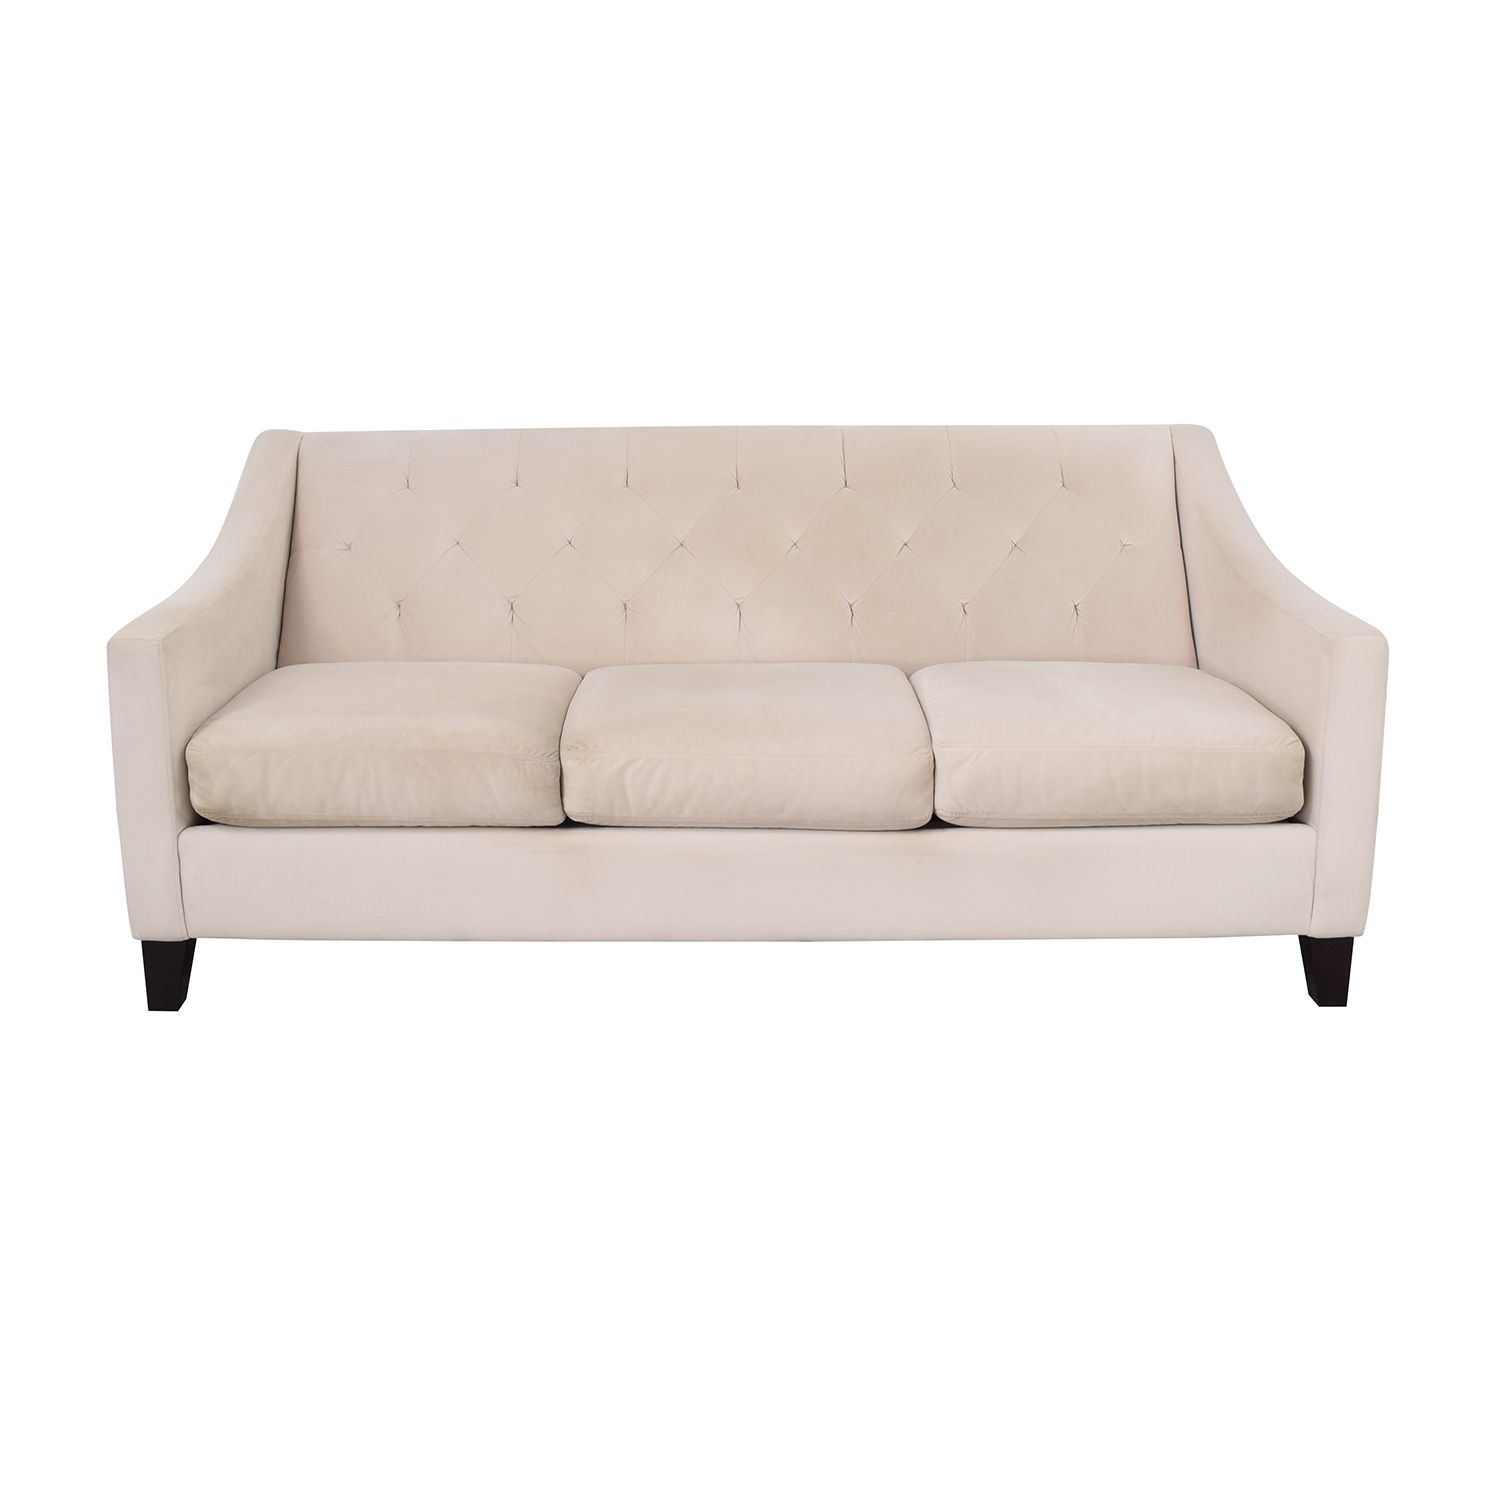 Macy's Macy's Three Cushion Sofa on sale